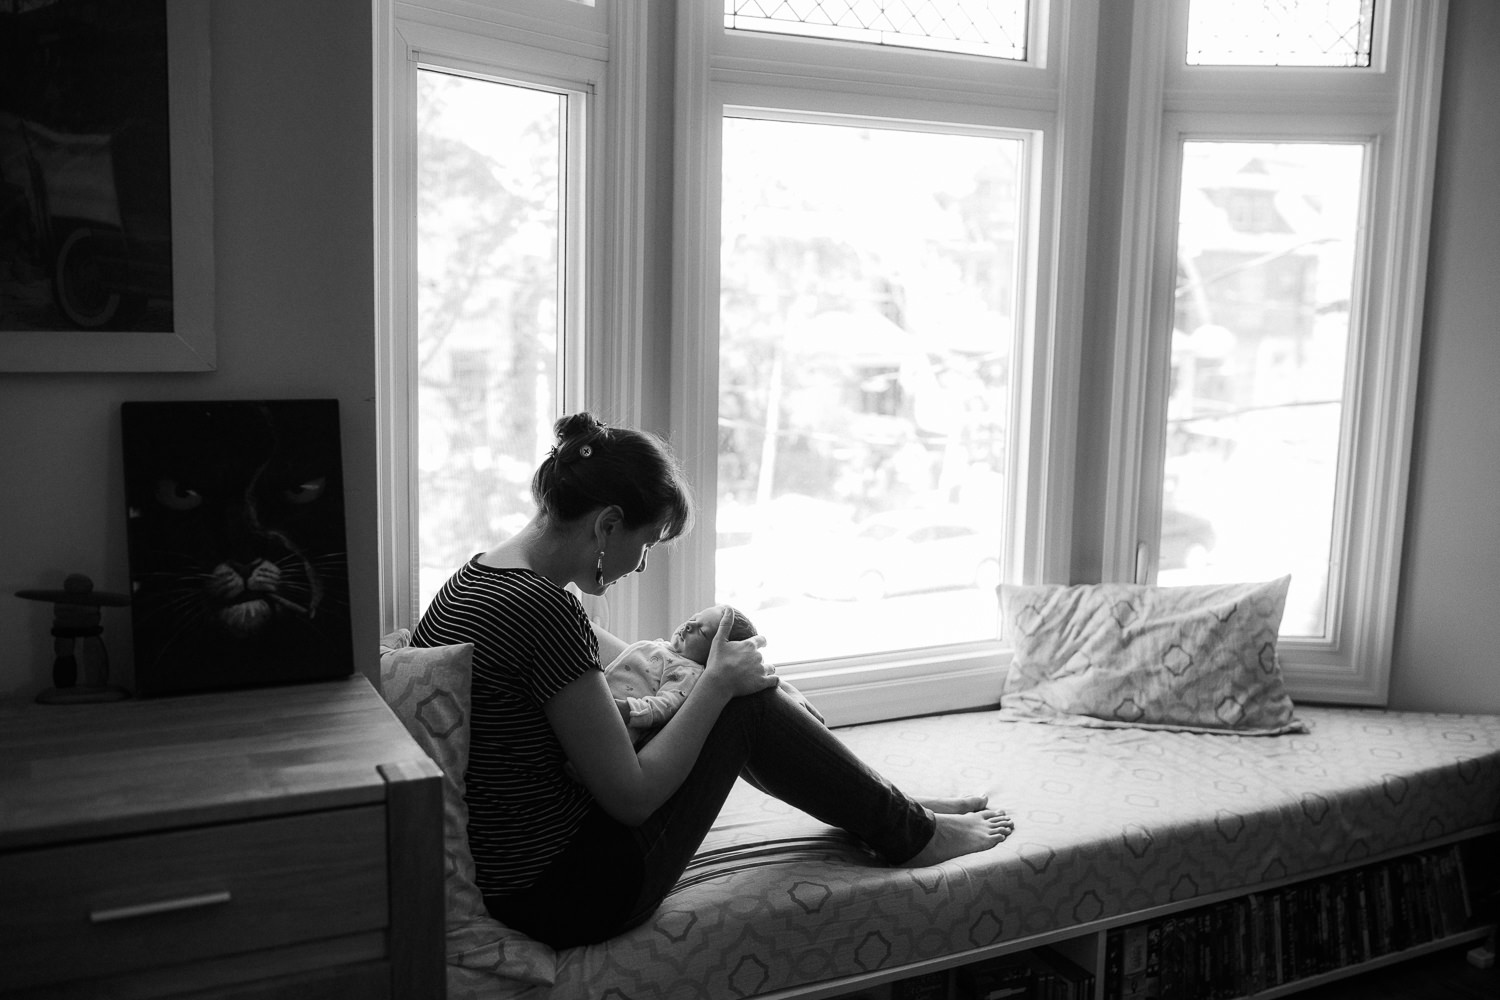 new mom sitting on window seat holding 2 week old baby girl - Newmarket Lifestyle Photography